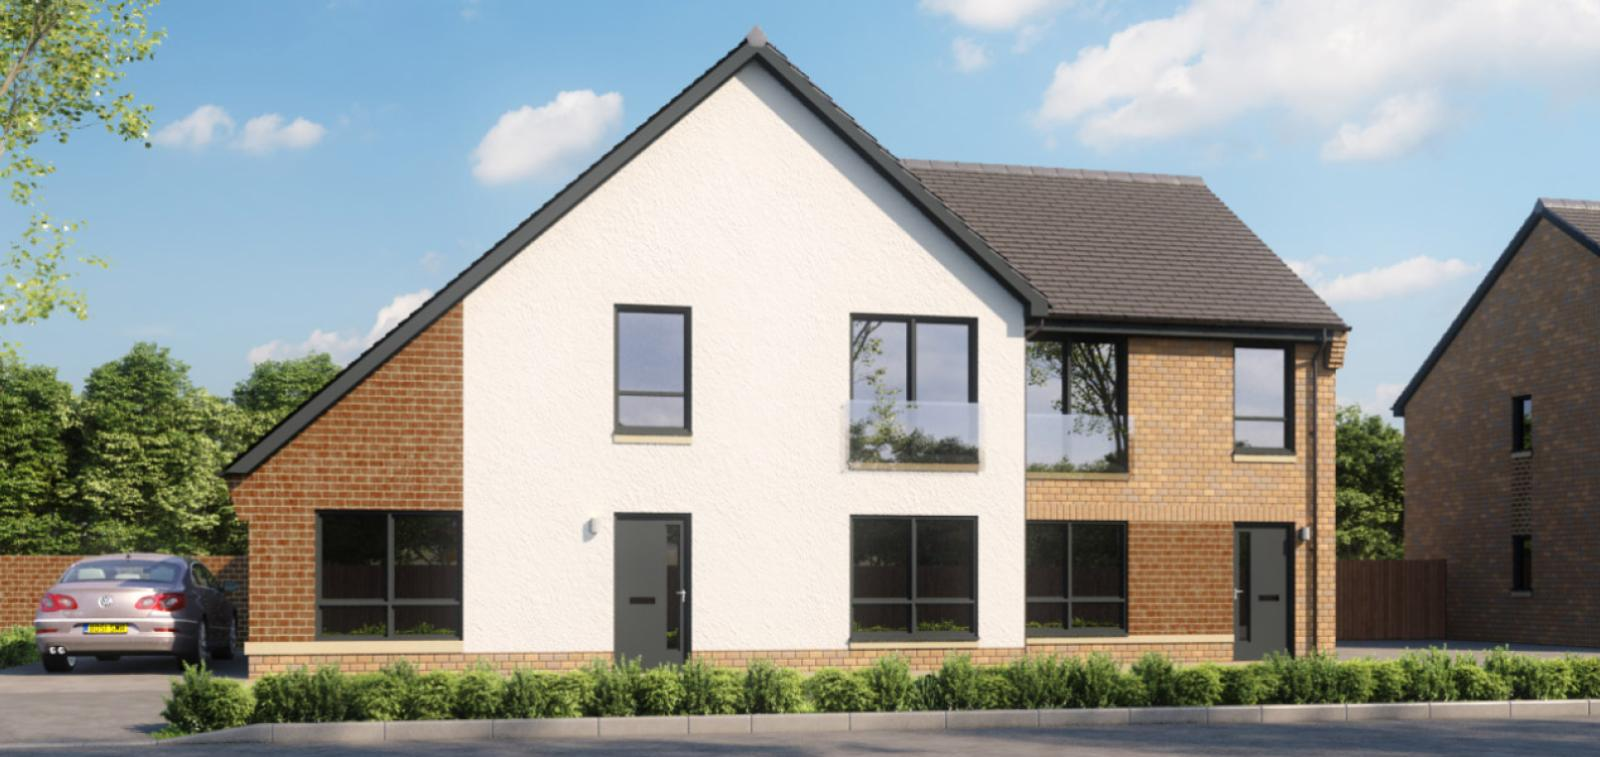 External CGI of the Newfield Square development including the Purdon and Meikle property types